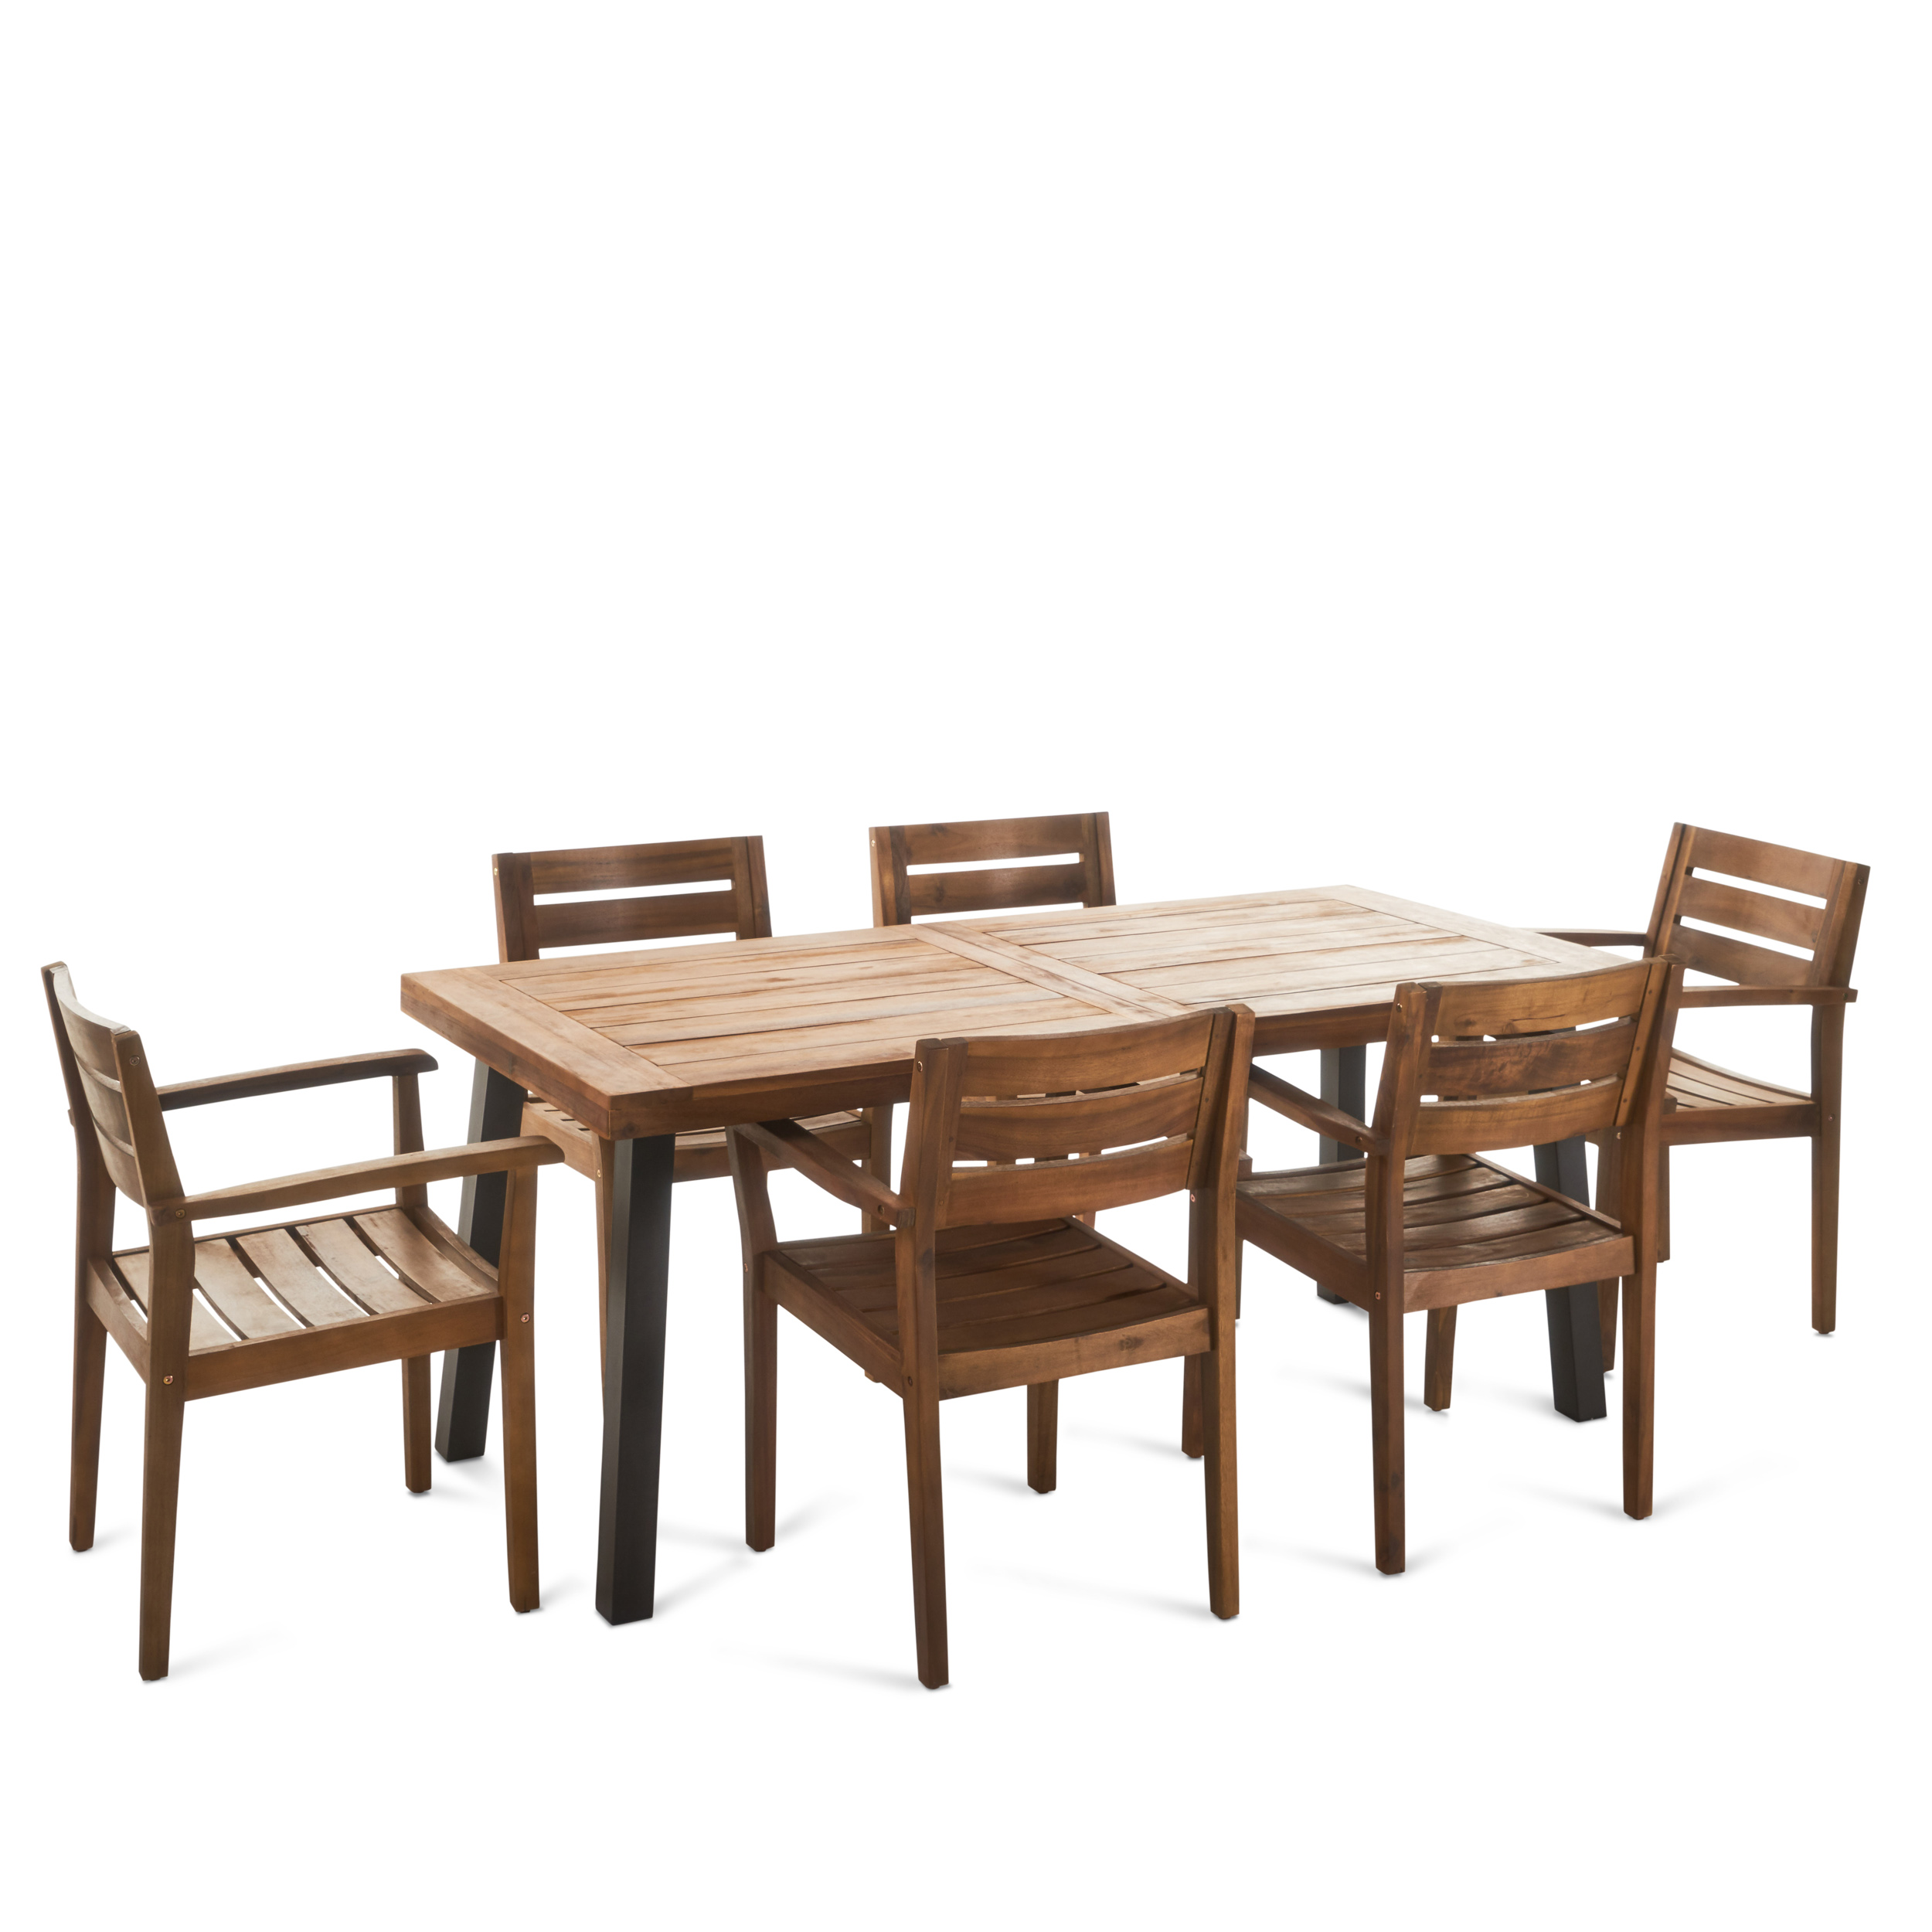 Avalon Outdoor 7 Piece Acacia Wood Dining Set with Rustic Metal Accents on the Table, Teak Finish